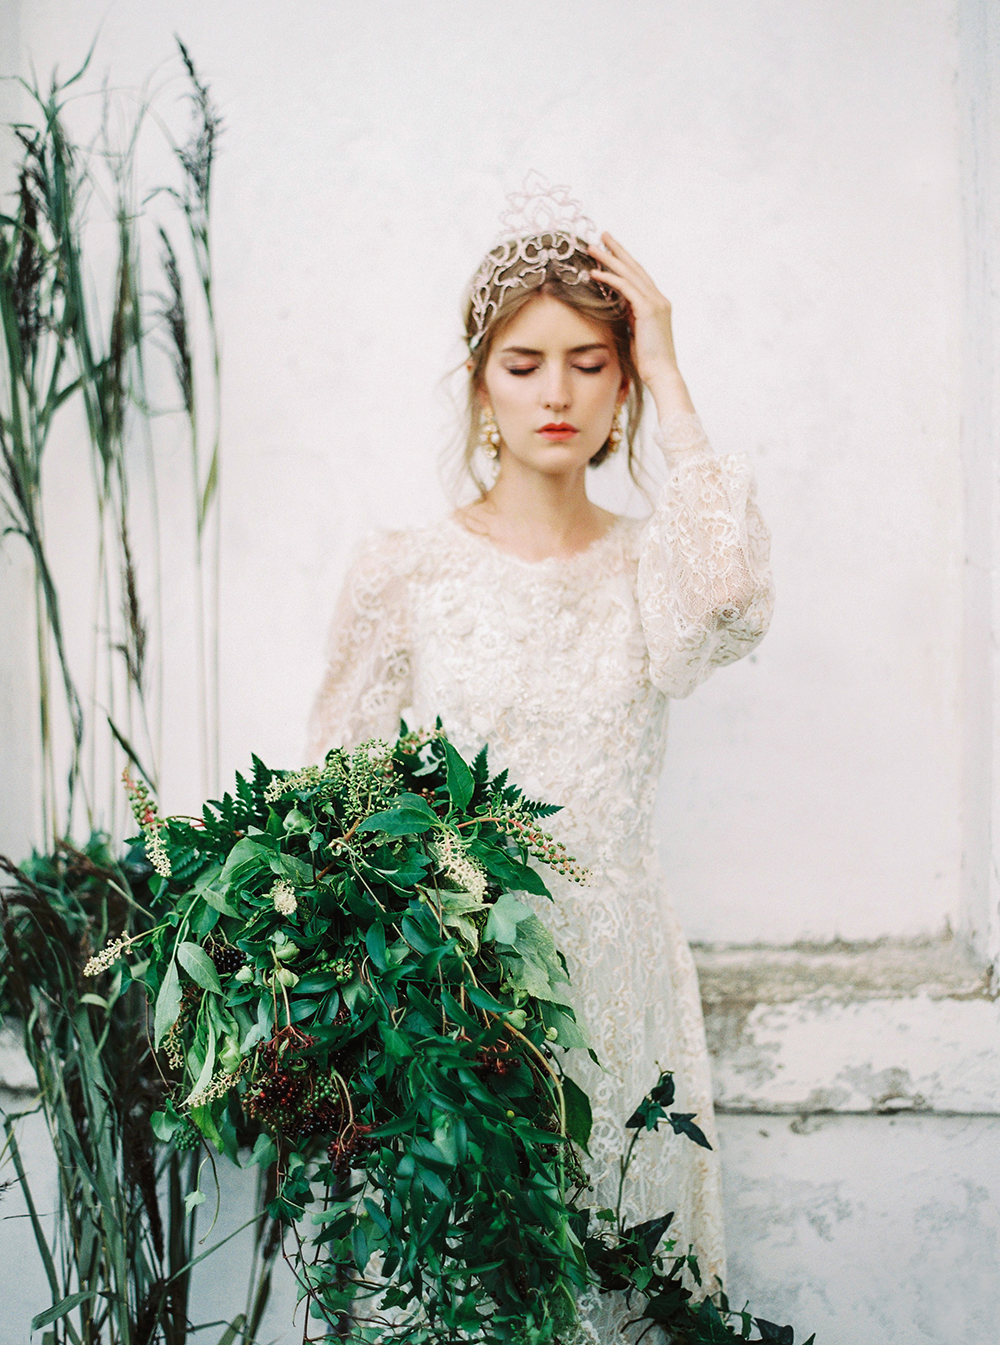 romantic bridal inspiration - photo by Zhenya Savina http://ruffledblog.com/russian-swan-princess-bridal-inspiration